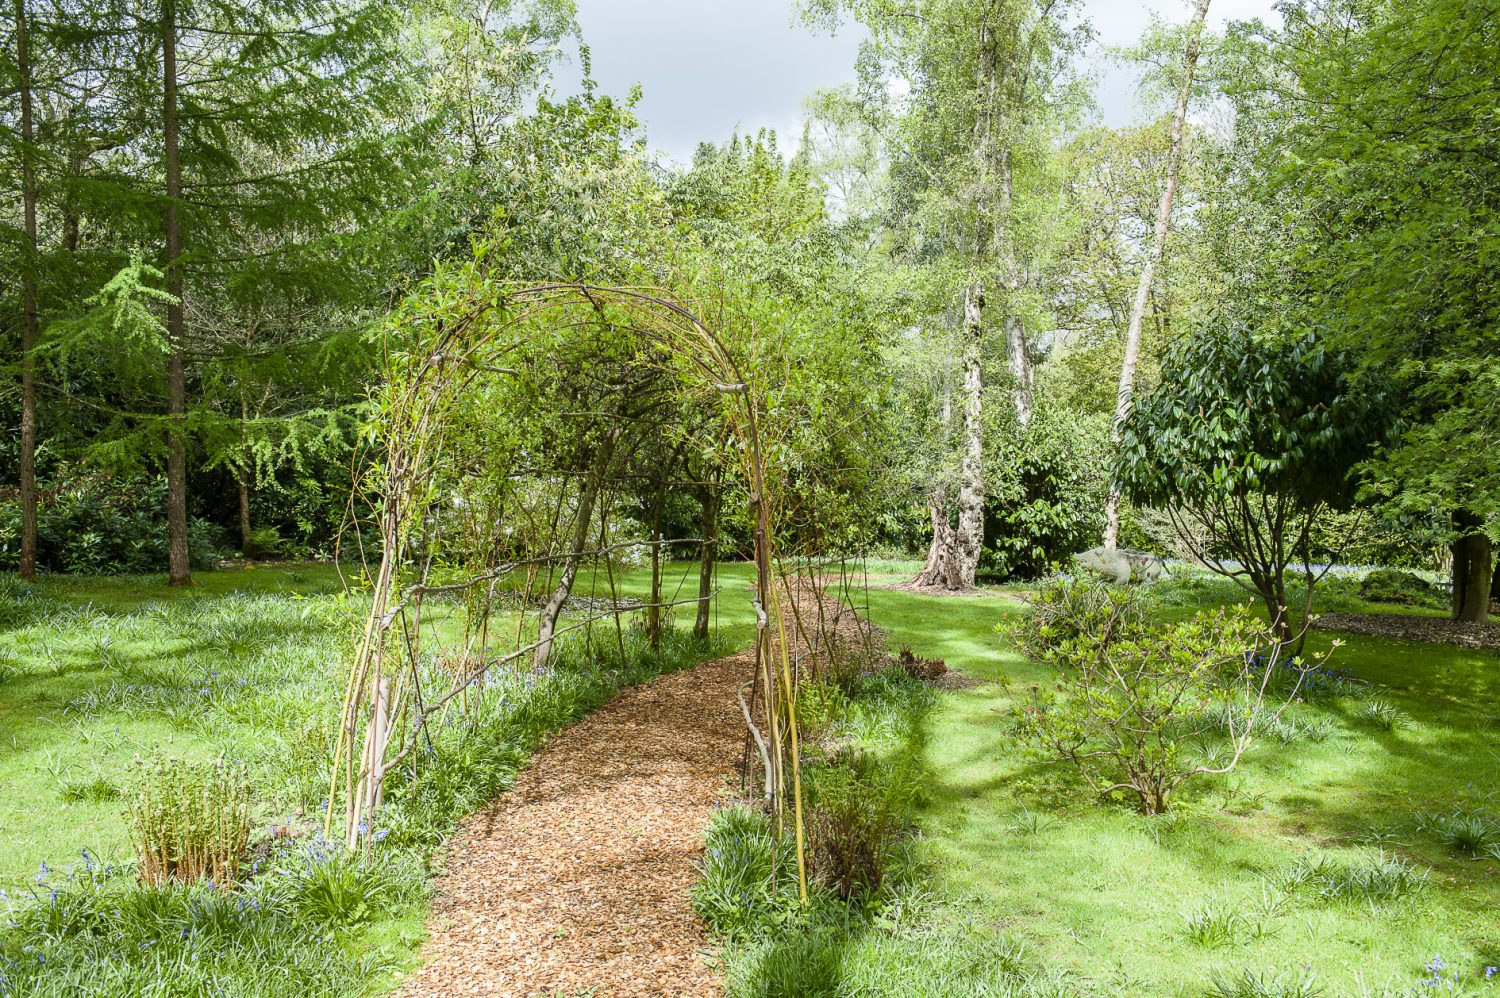 A path meanders through the garden